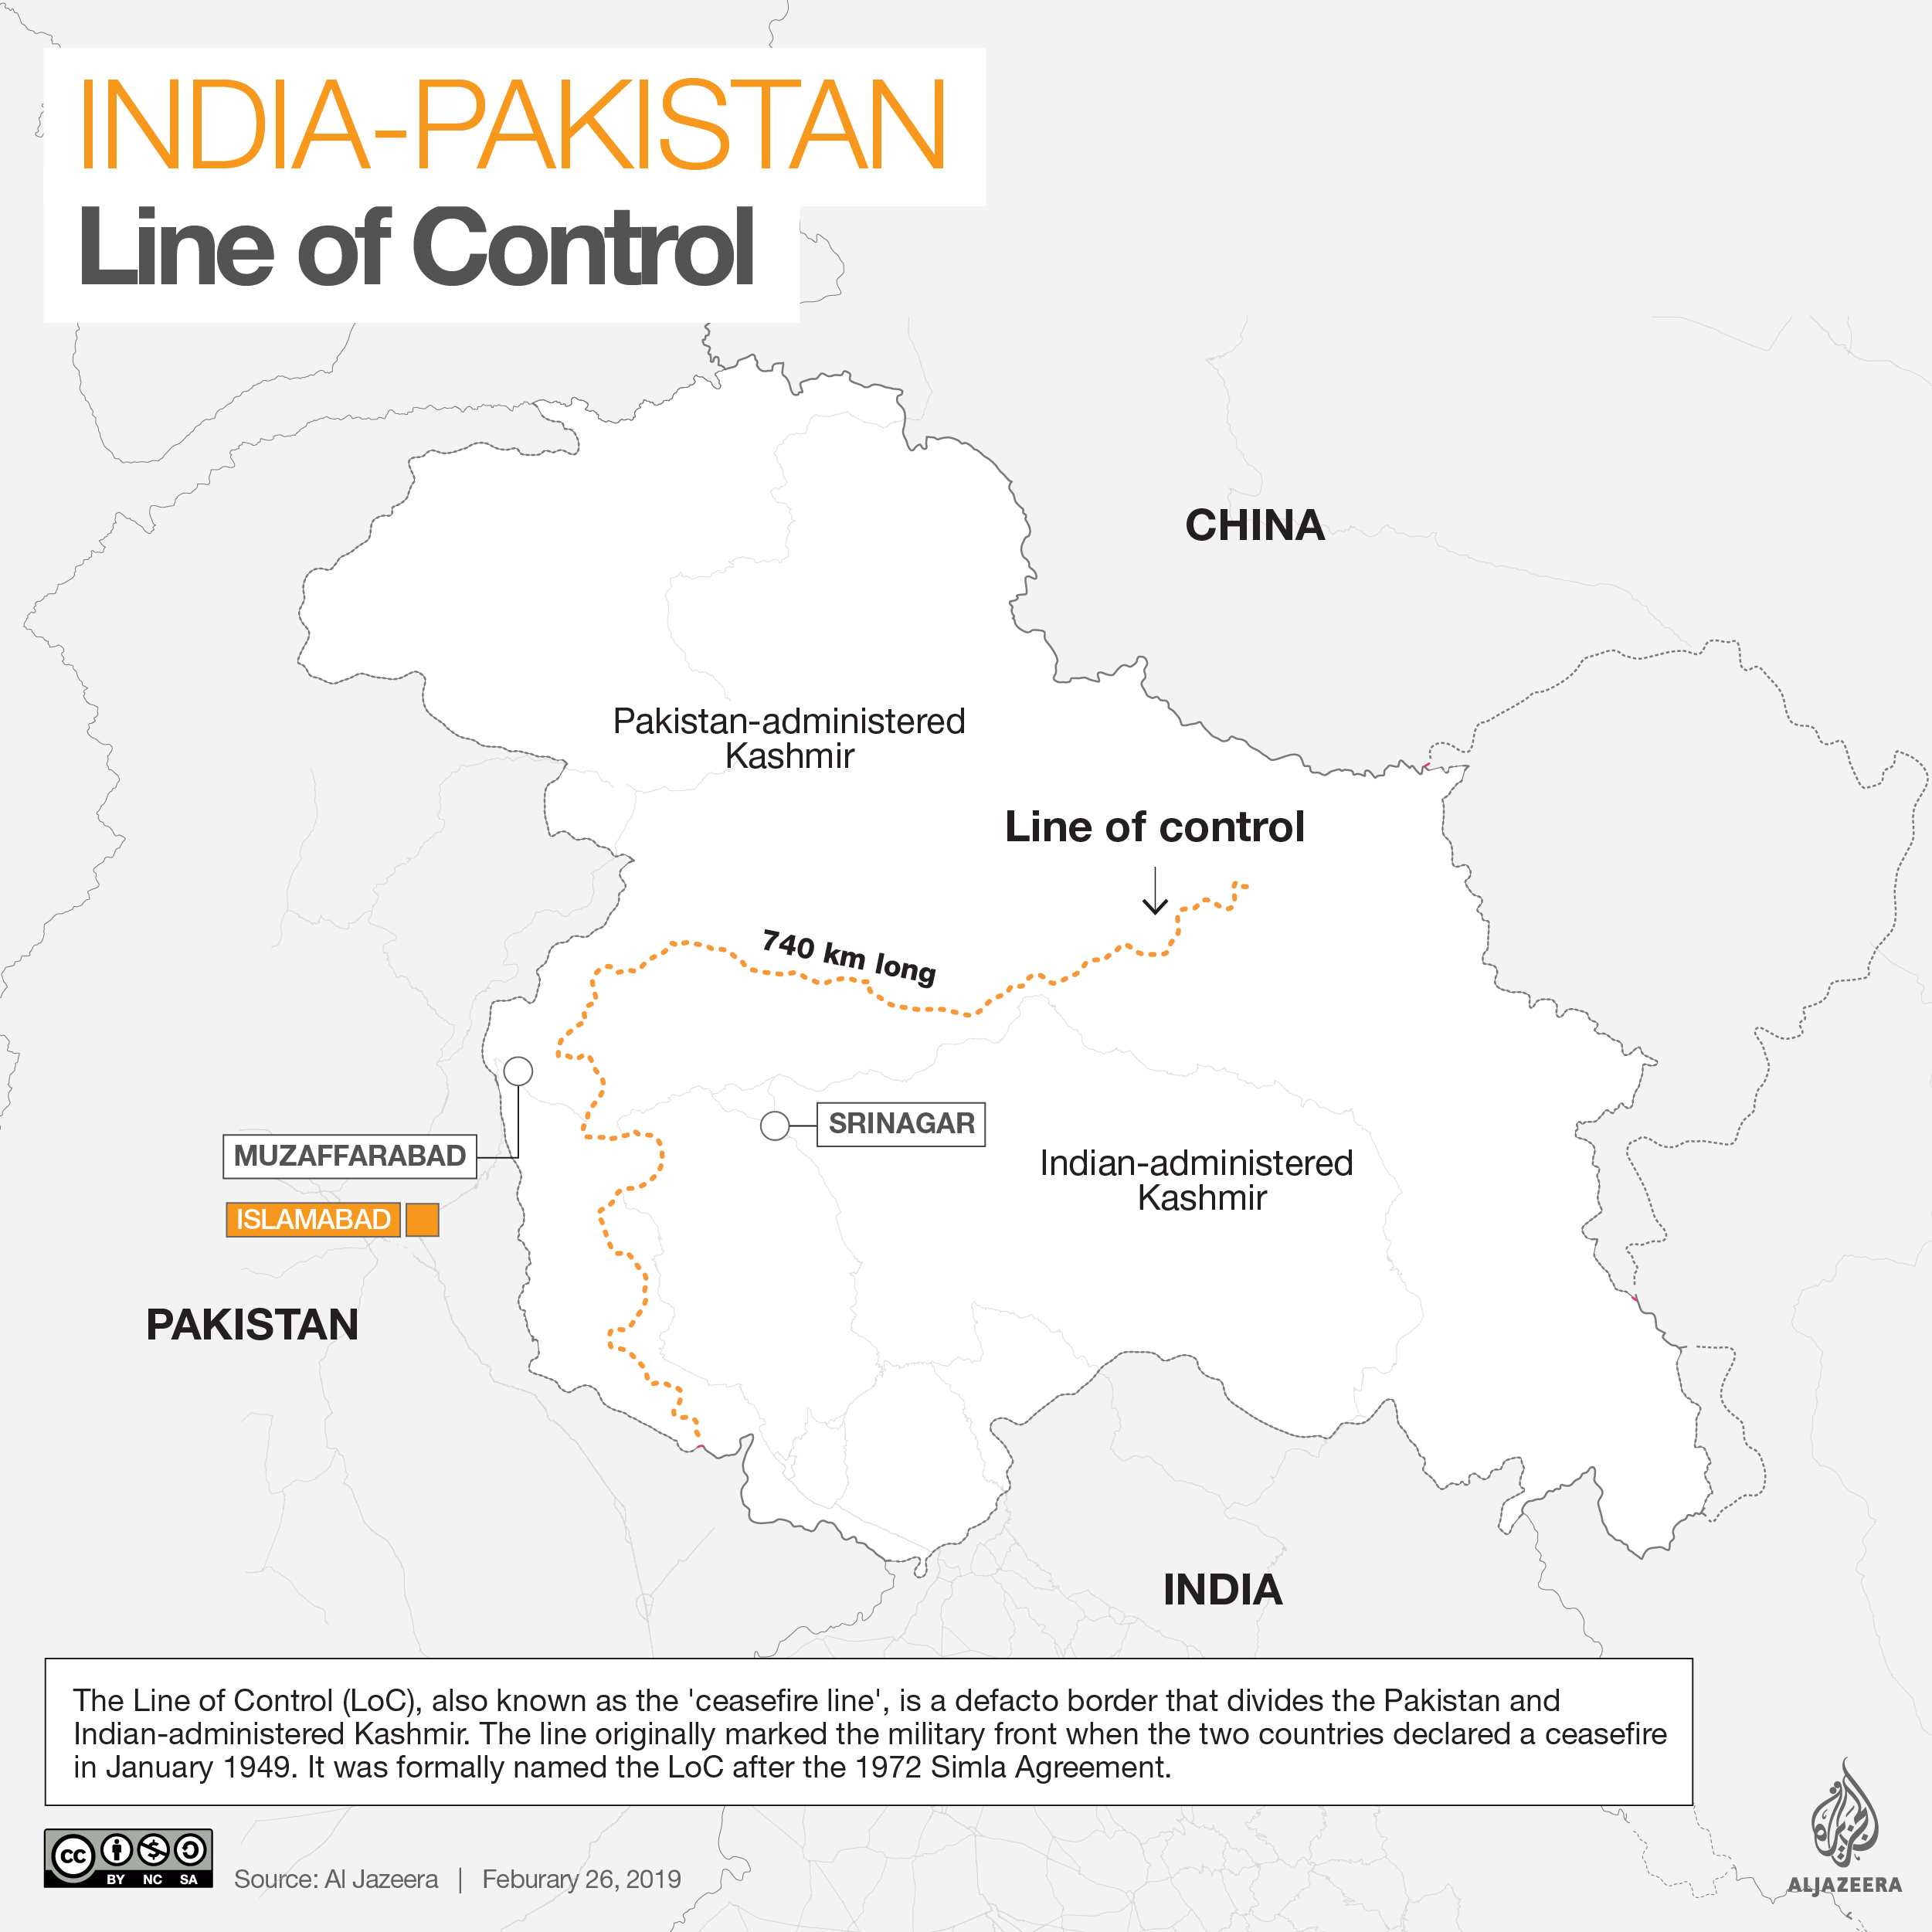 Latest News Updates: India-Pakistan Tensions: All The Latest Updates